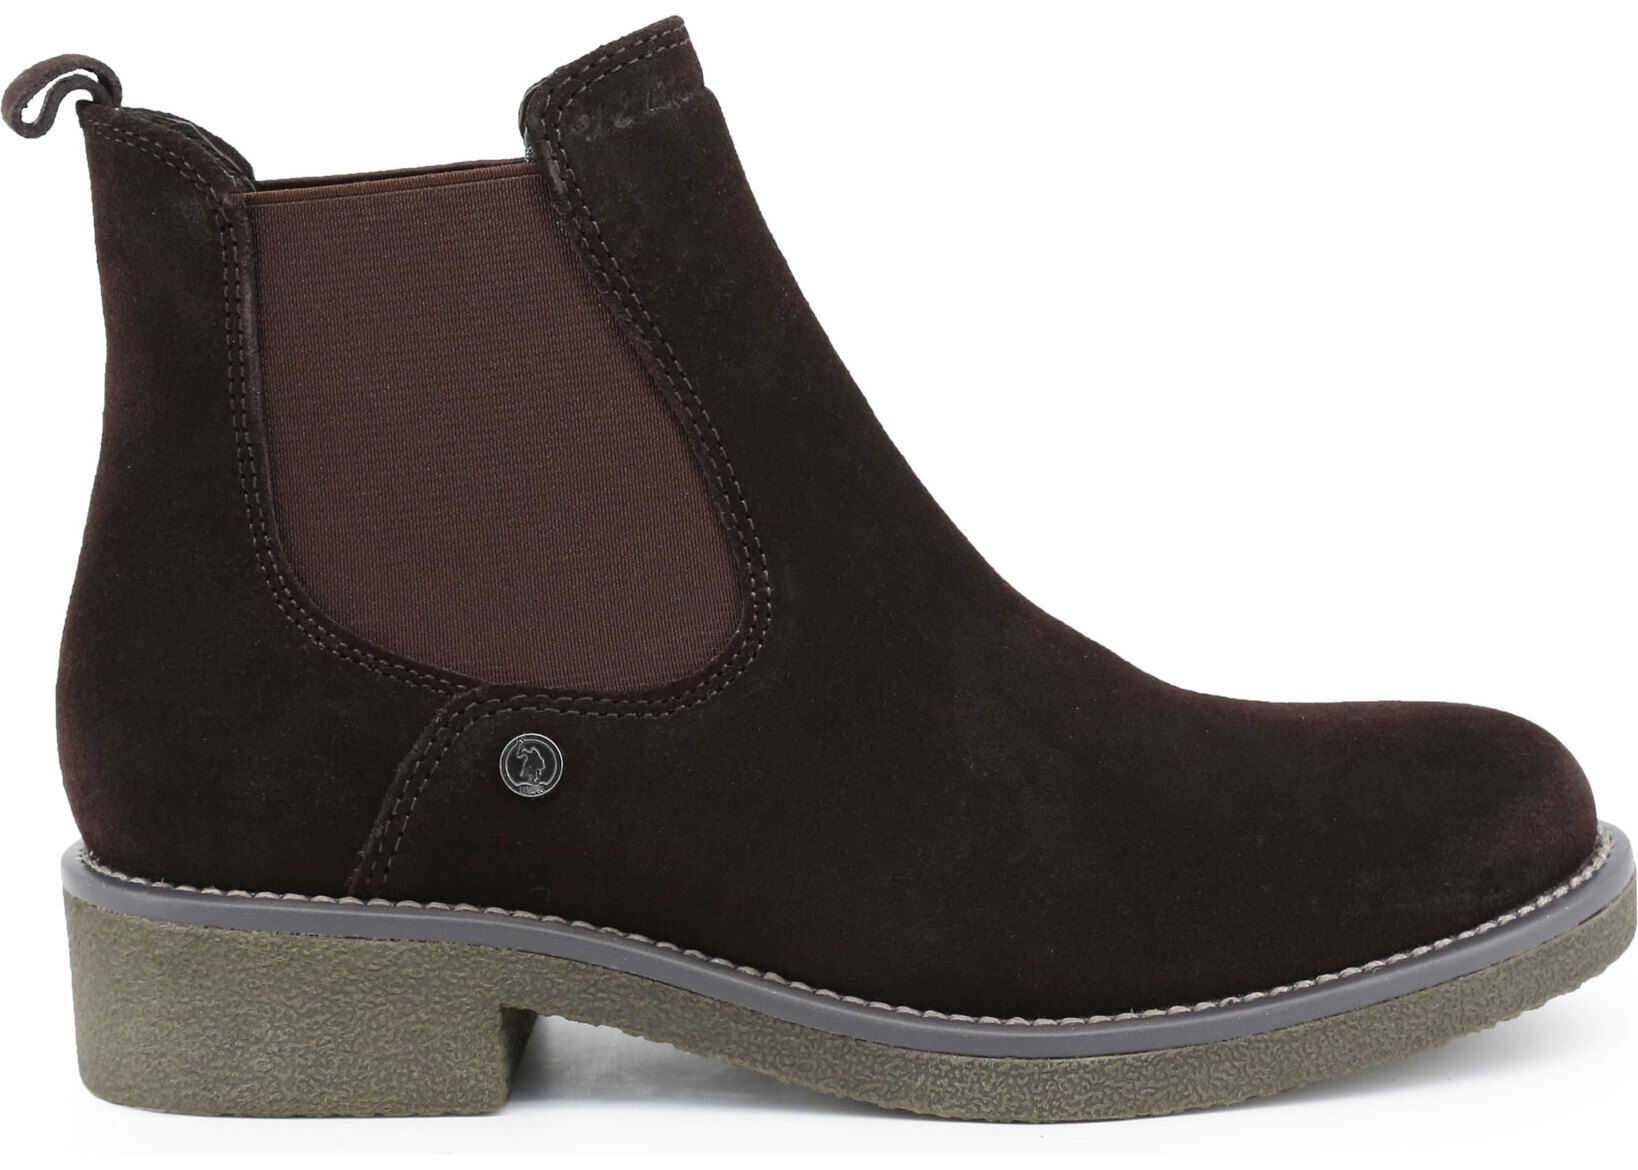 U.S. POLO ASSN. Verve4153W8 Brown